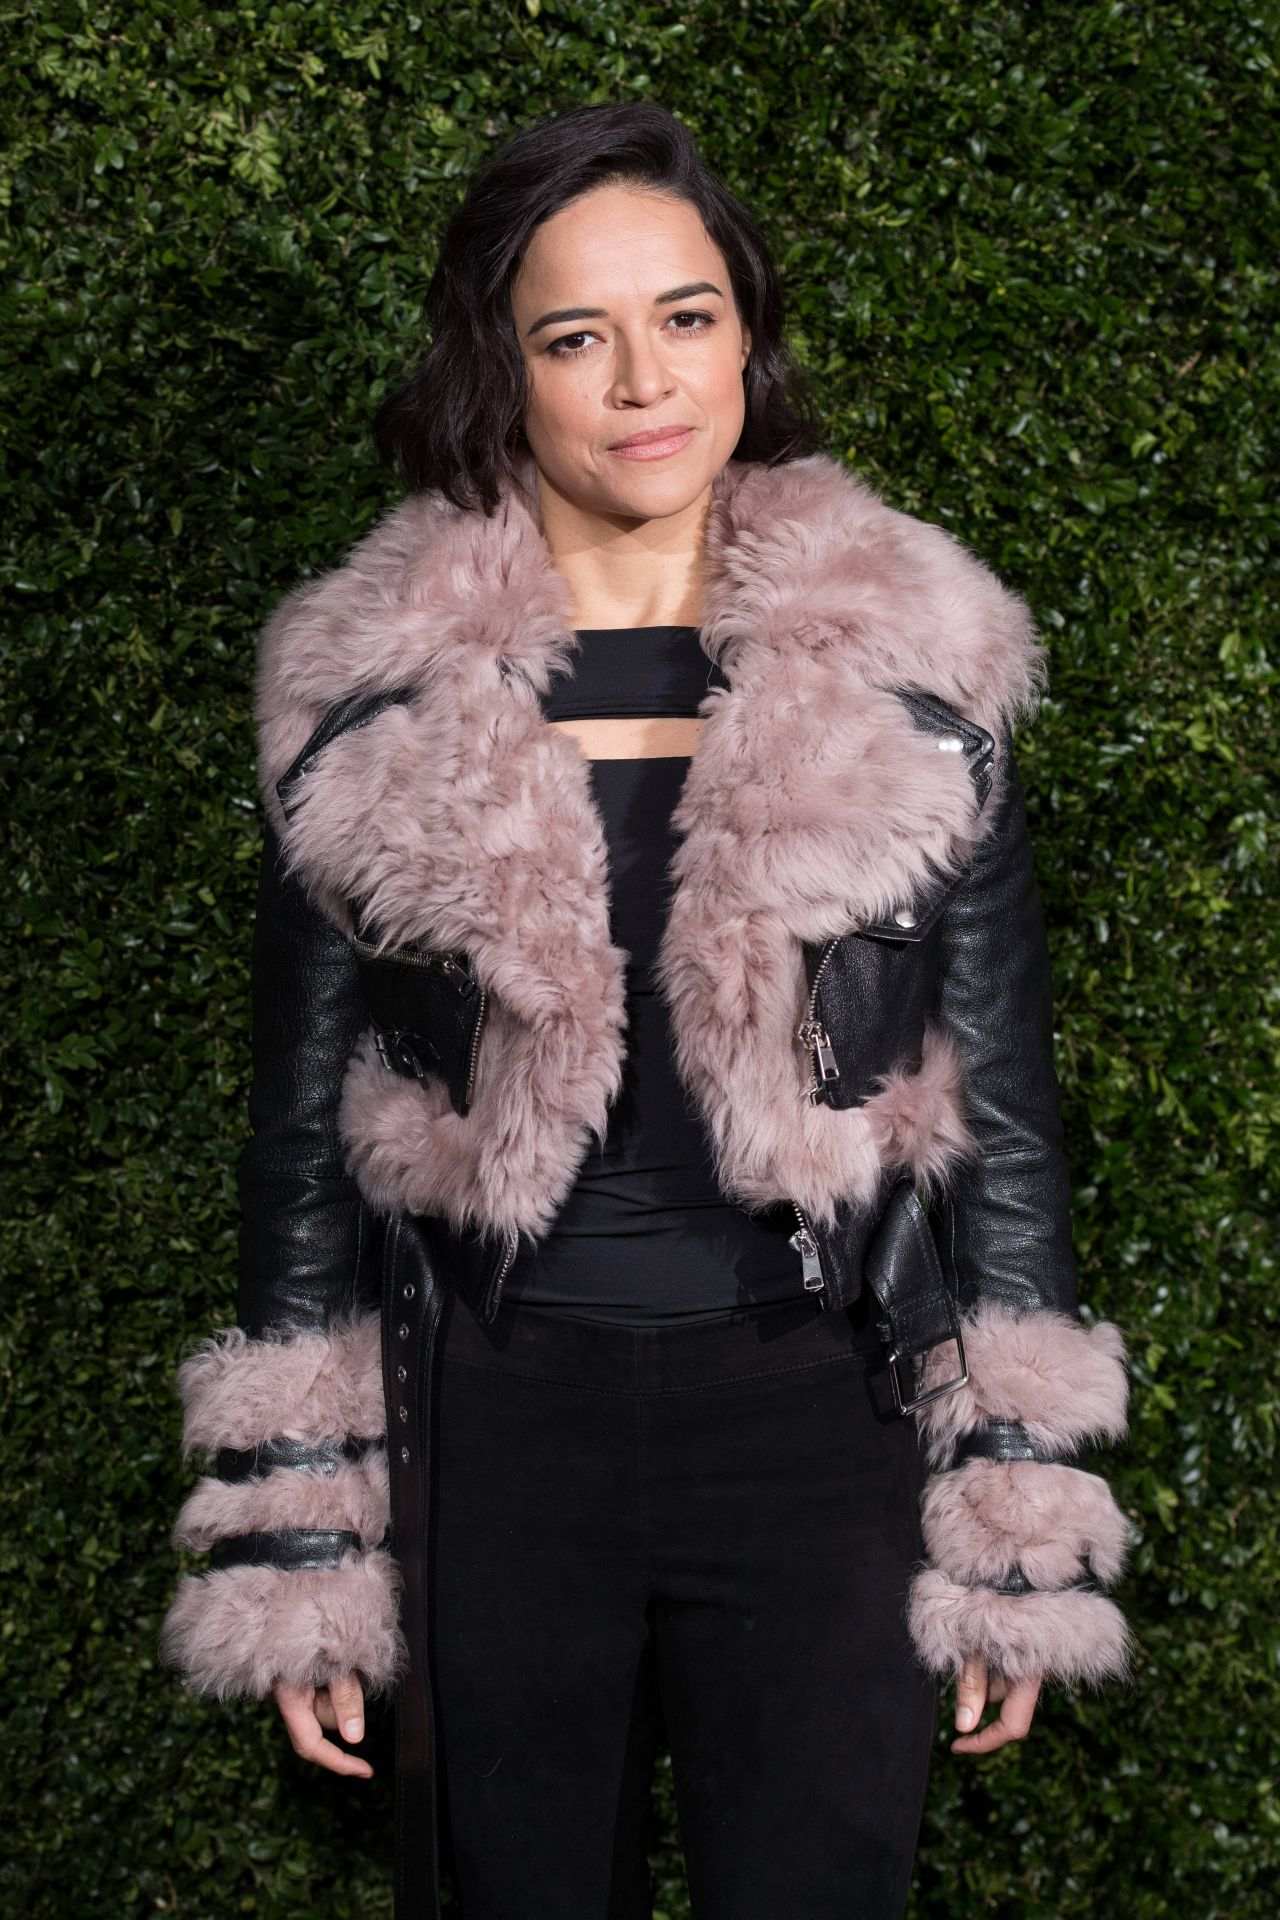 https://celebmafia.com/wp-content/uploads/2019/02/michelle-rodriguez-charles-finch-x-chanel-pre-bafta-dinner-in-london-02-09-2019-12.jpg